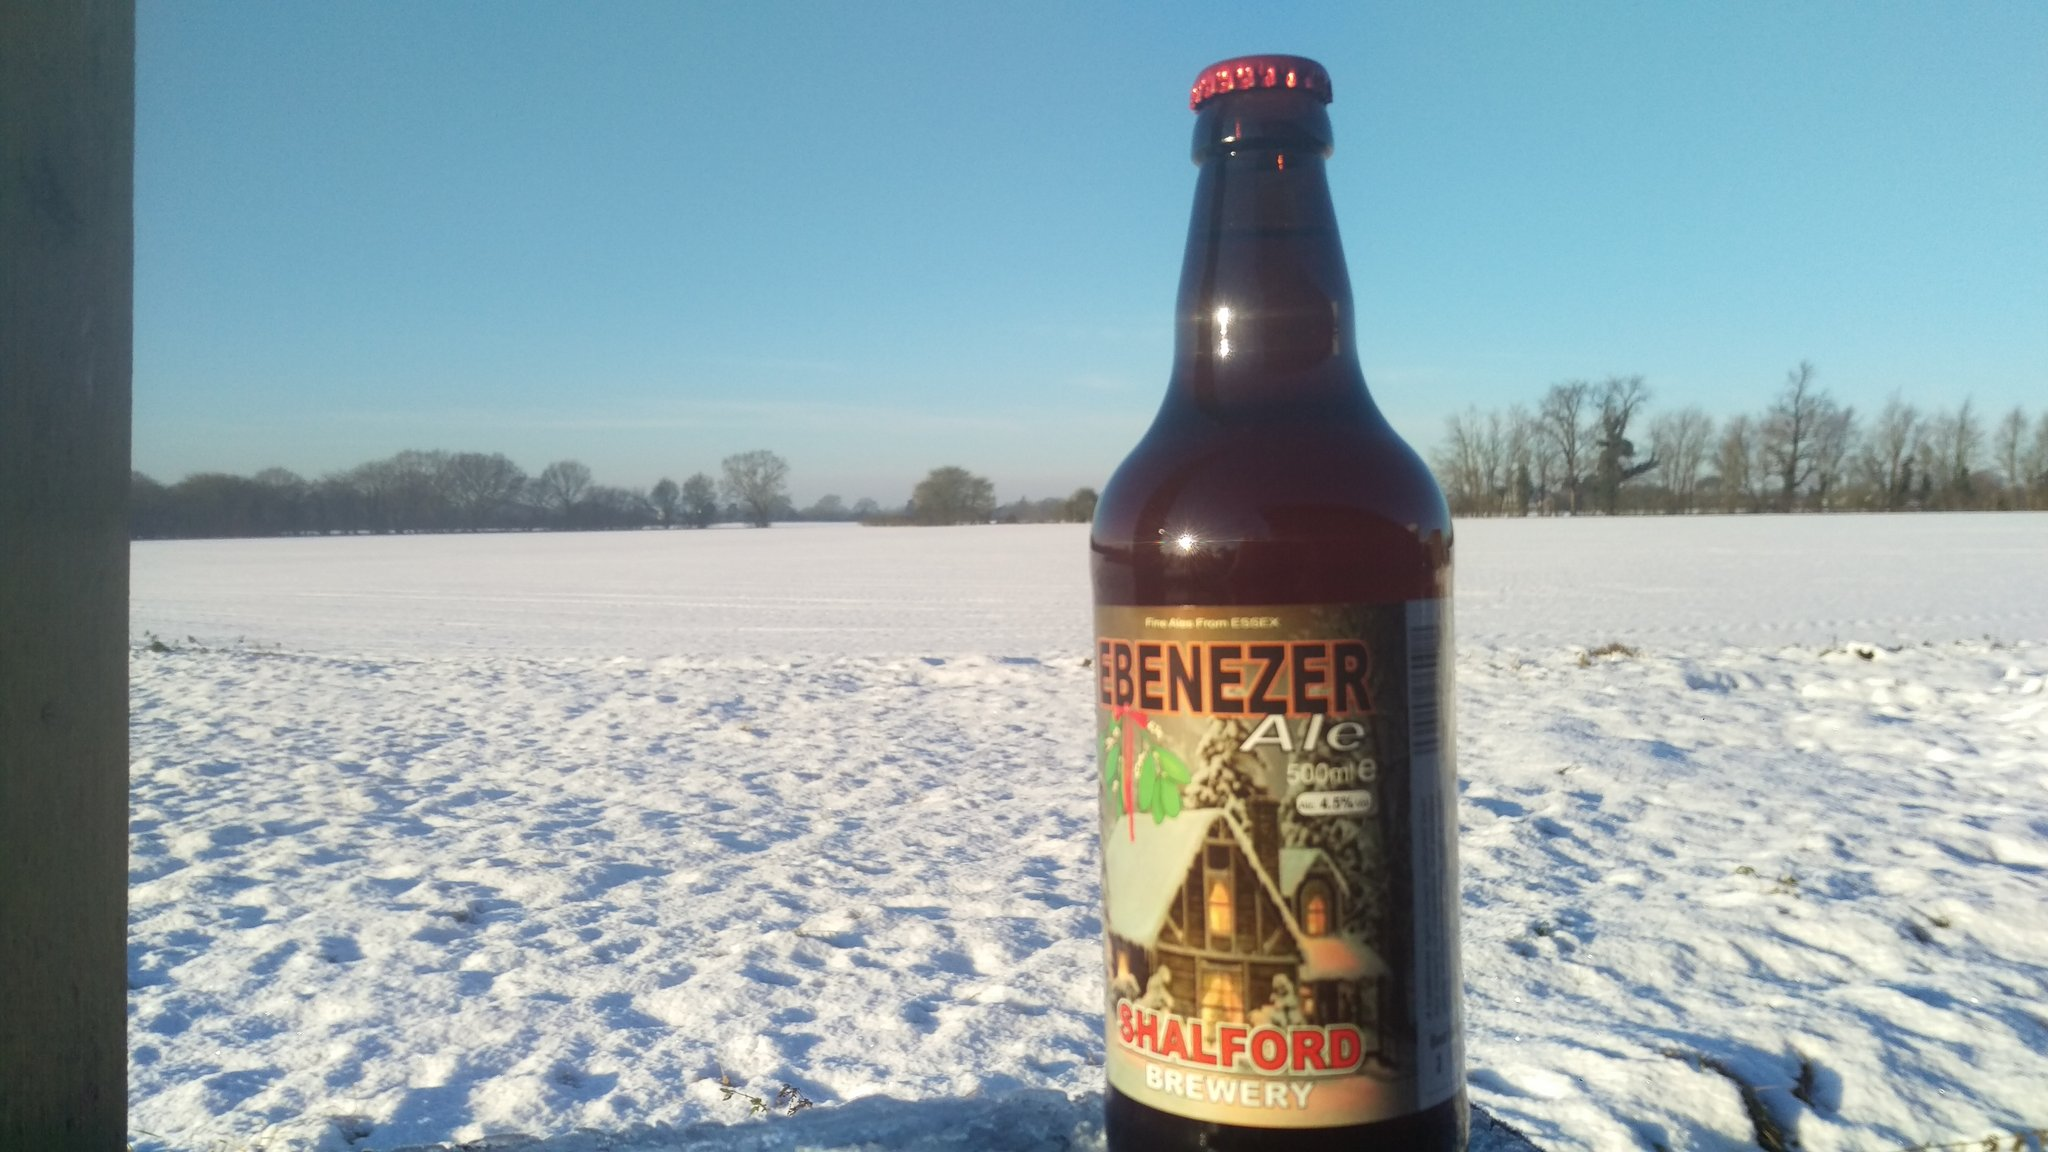 Shalford Brewery beer range available at the Essex Produce Co. in Kelvedon, Essex.